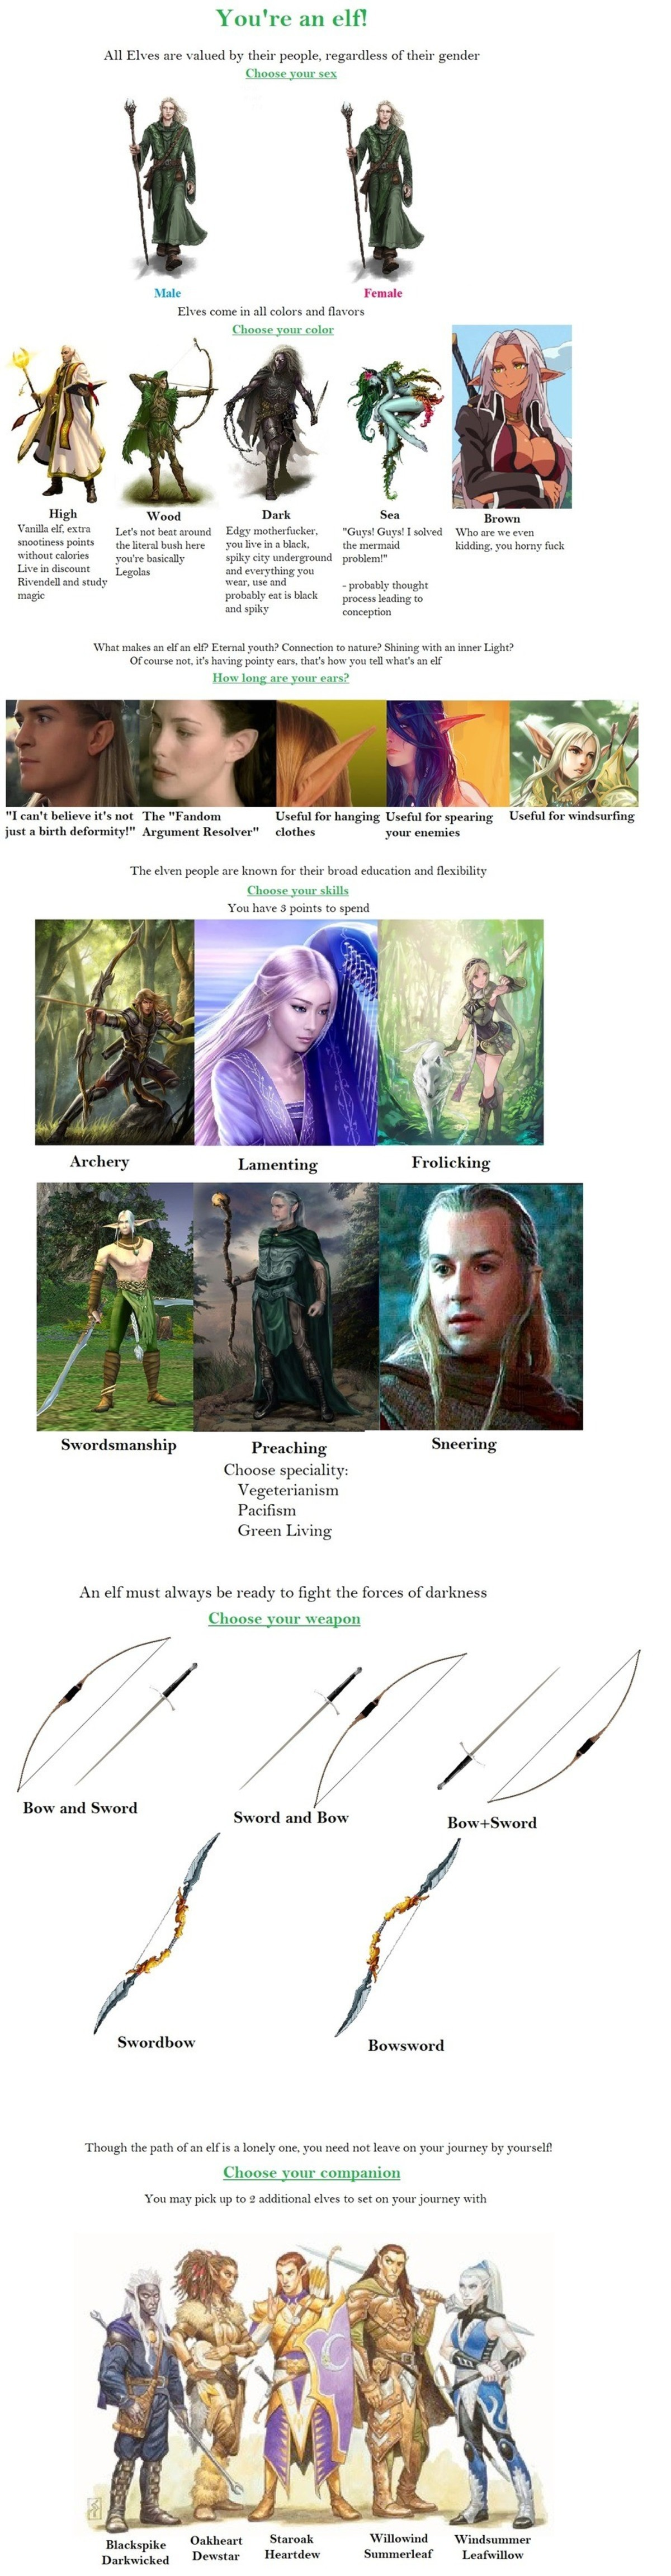 Elf CYOA. .. Where's the option to make them dead? By Grimnir this list is incomplete.Comment edited at .